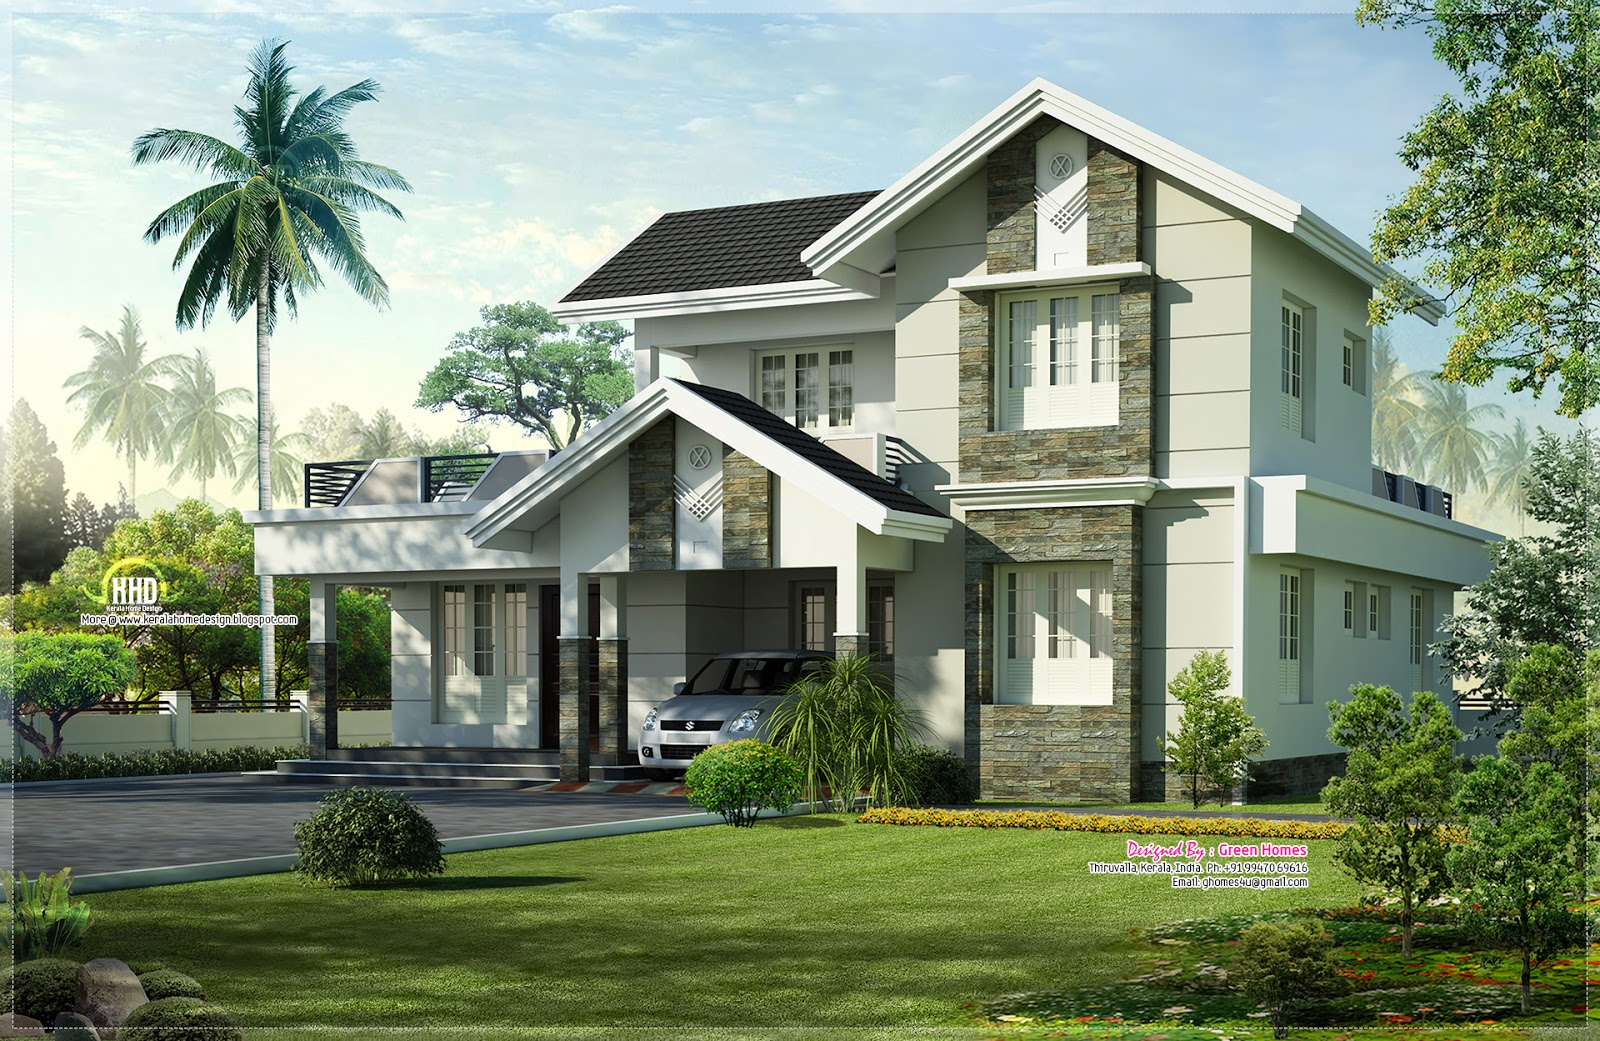 1975 nice home exterior design kerala home for Exterior home design program